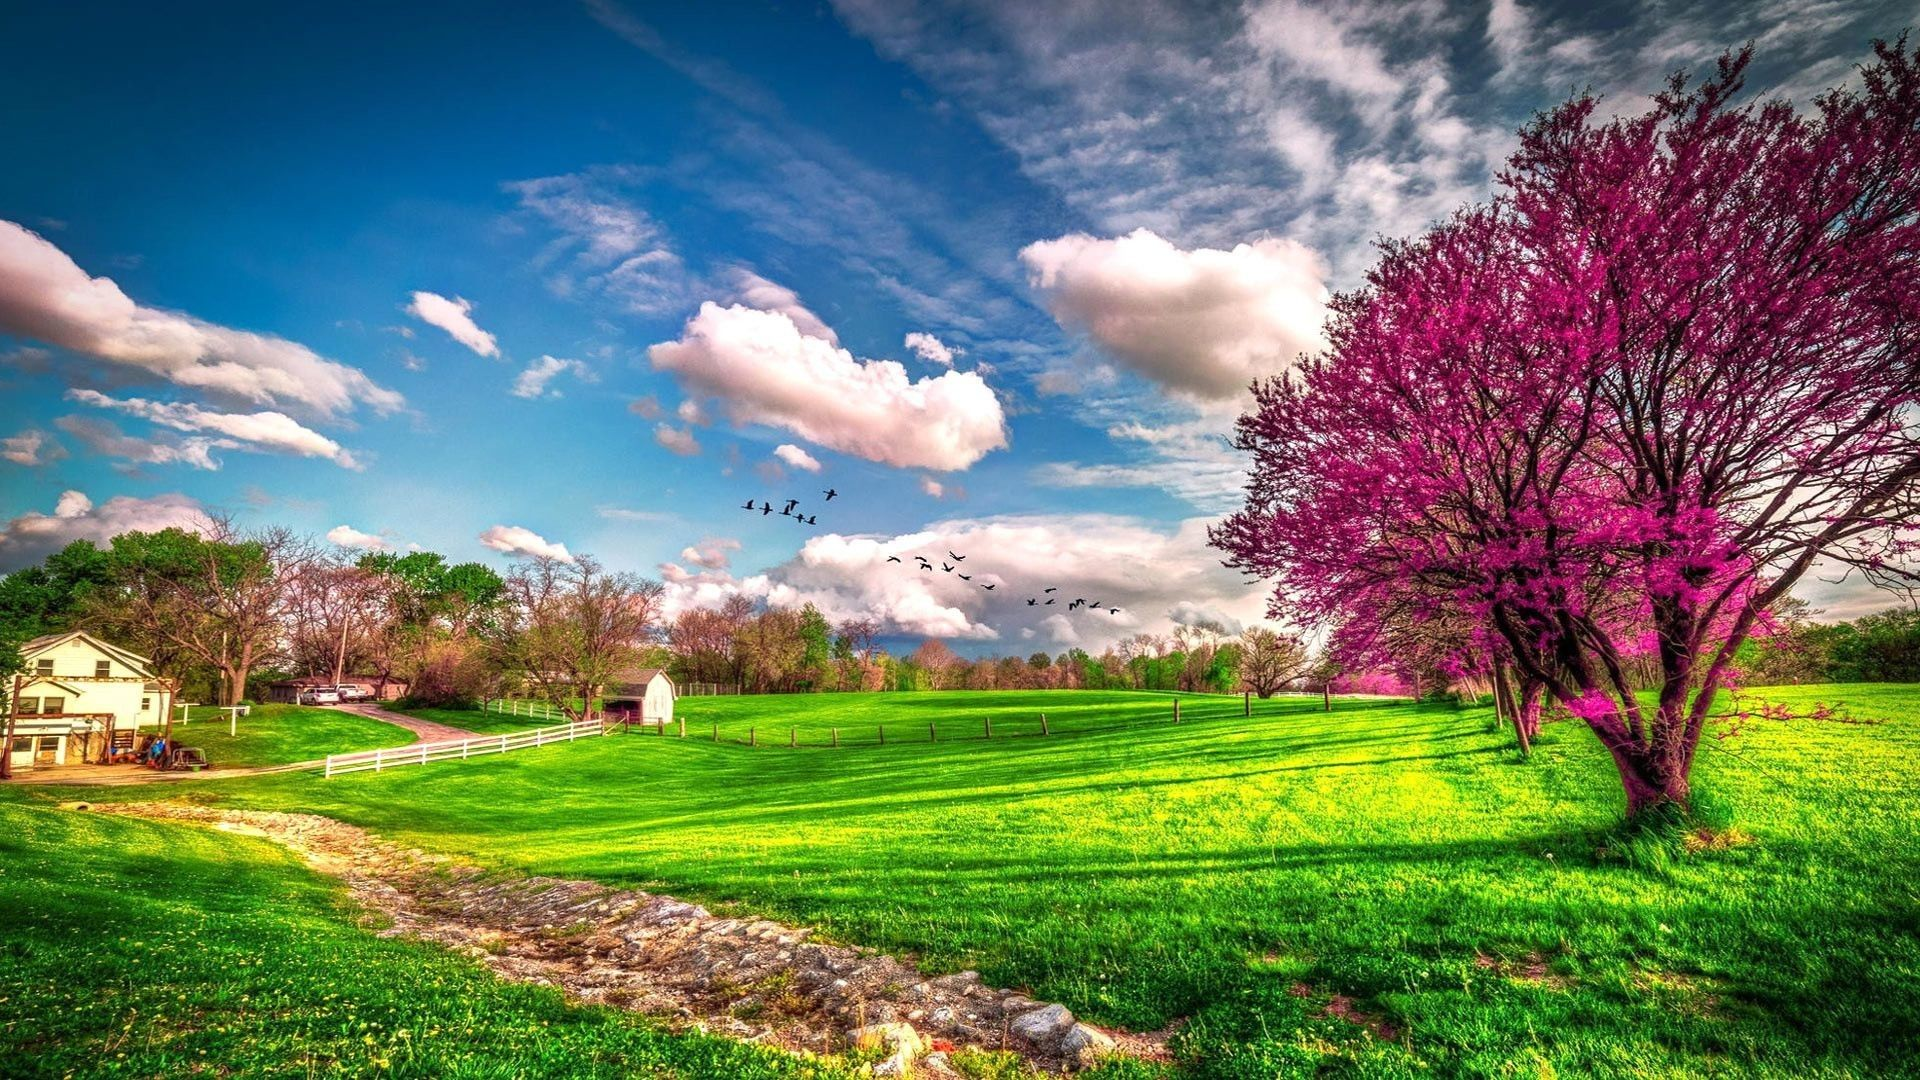 Res 1920x1080 Wallpaper Download Landscape Beautiful Spring Nature Spring Wallpapers Seasons Wall Landscape Wallpaper Spring Landscape Spring Wallpaper